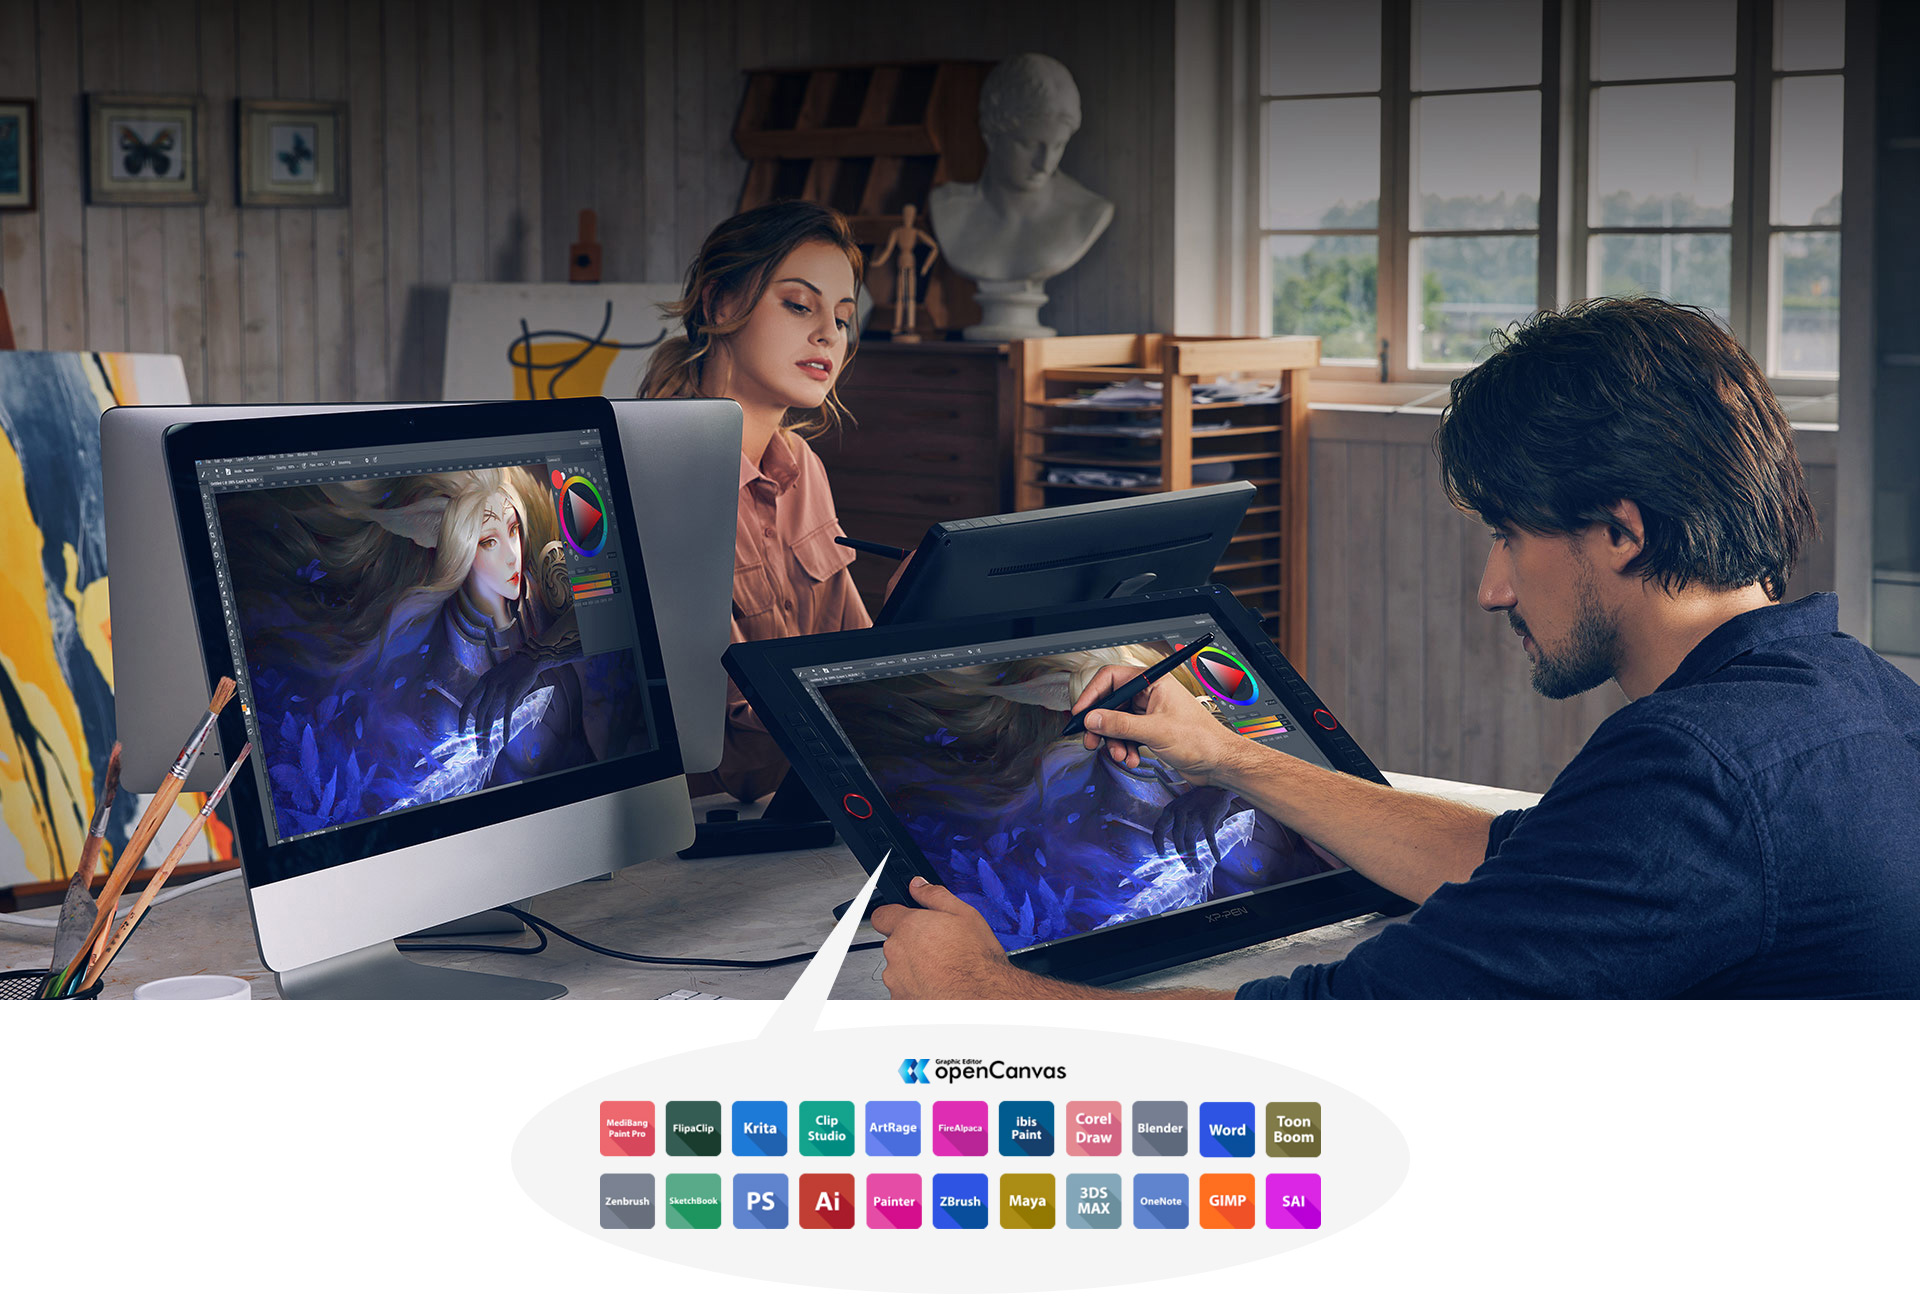 XP-Pen Artist 24 Pro features two easy-to-control red dial wheels and 20 customizable shortcut keys